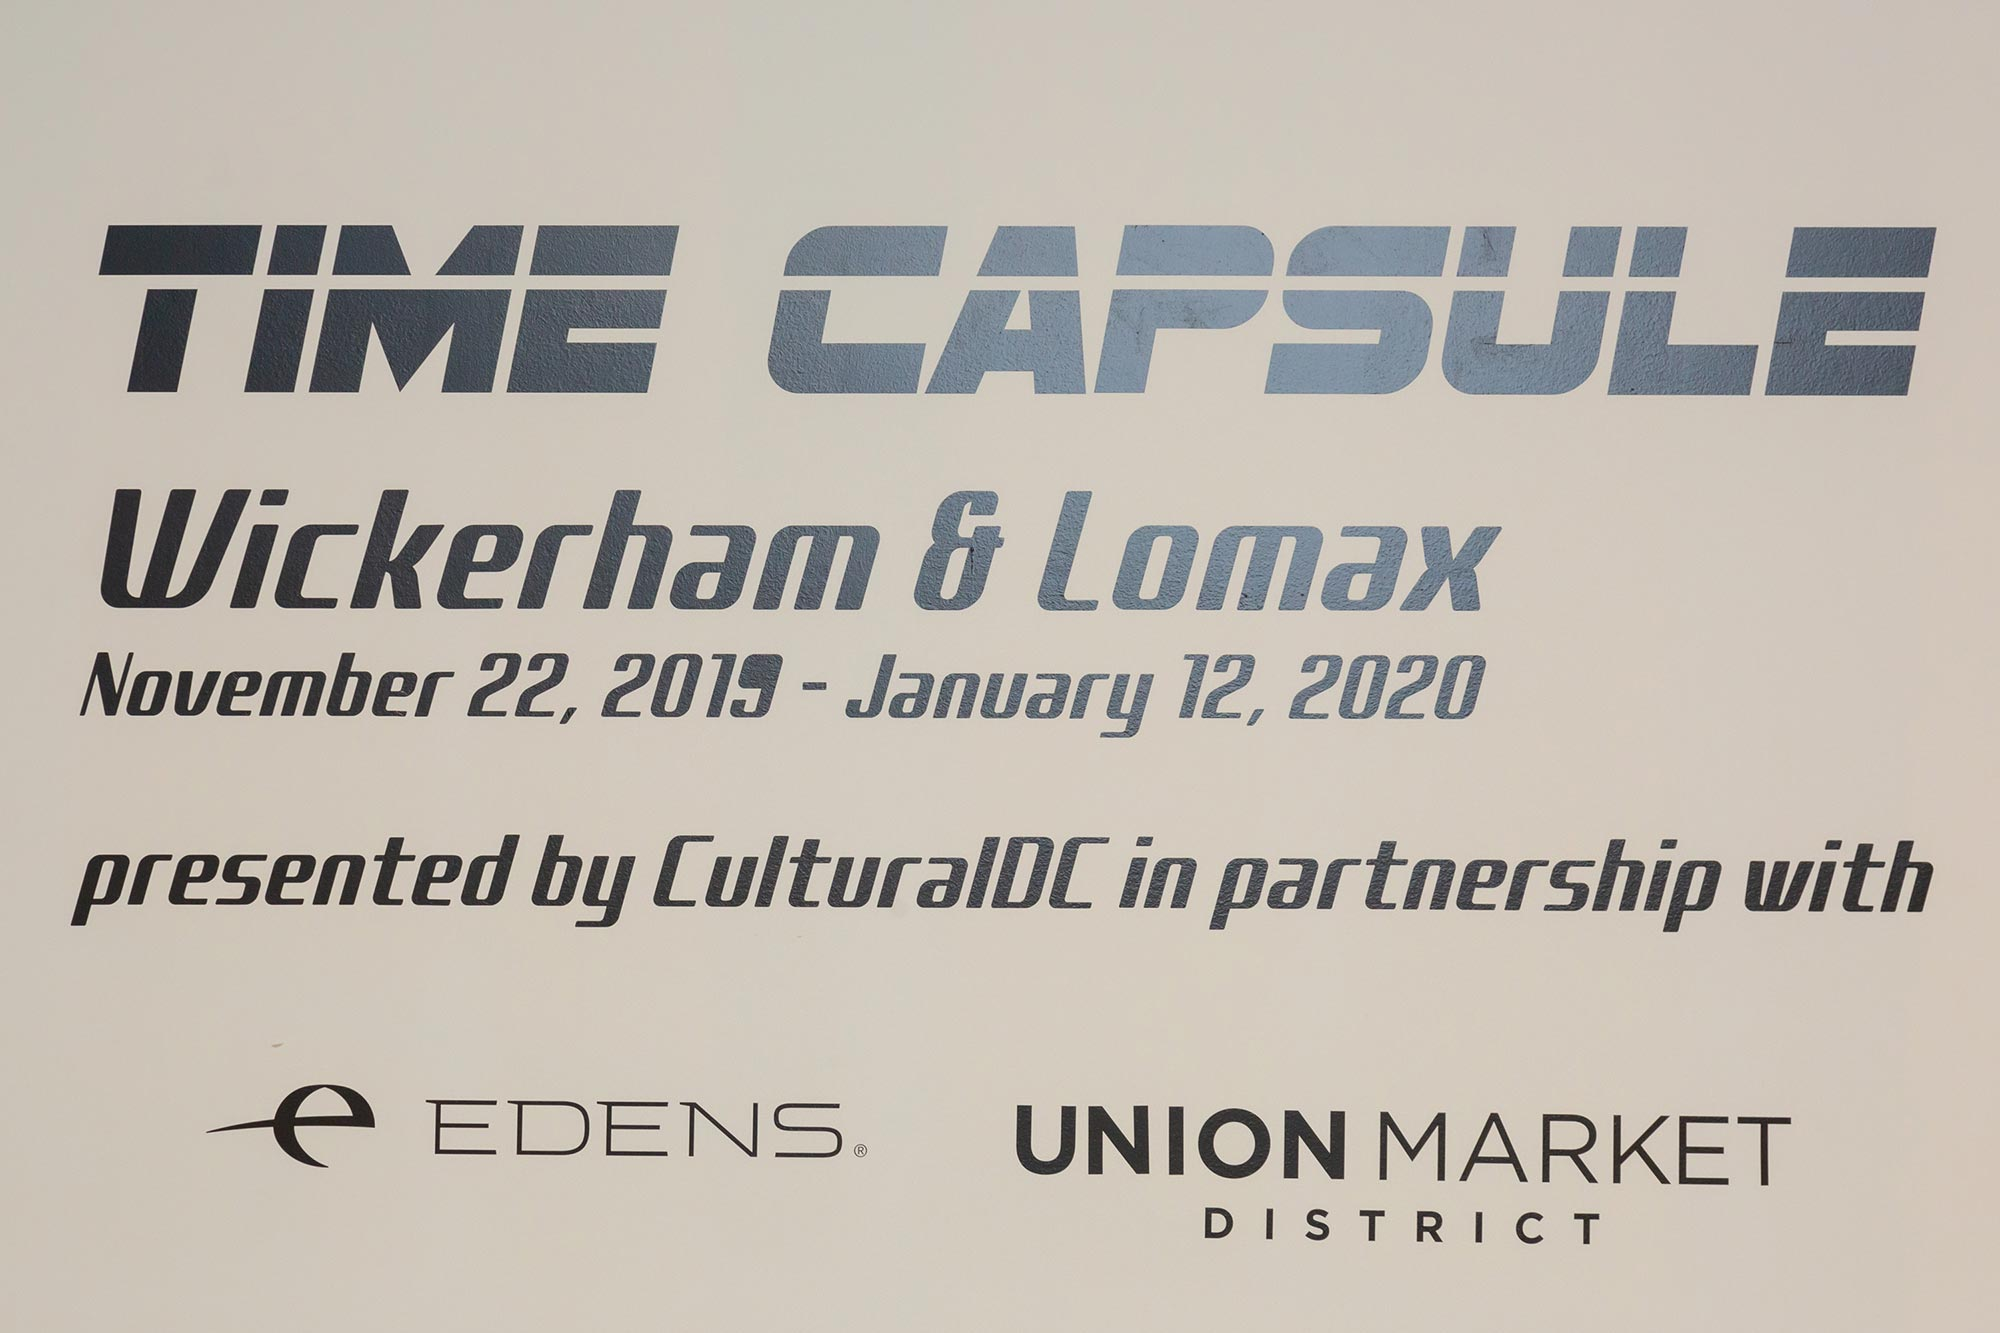 Wickerham & Lomax | Time Capsule